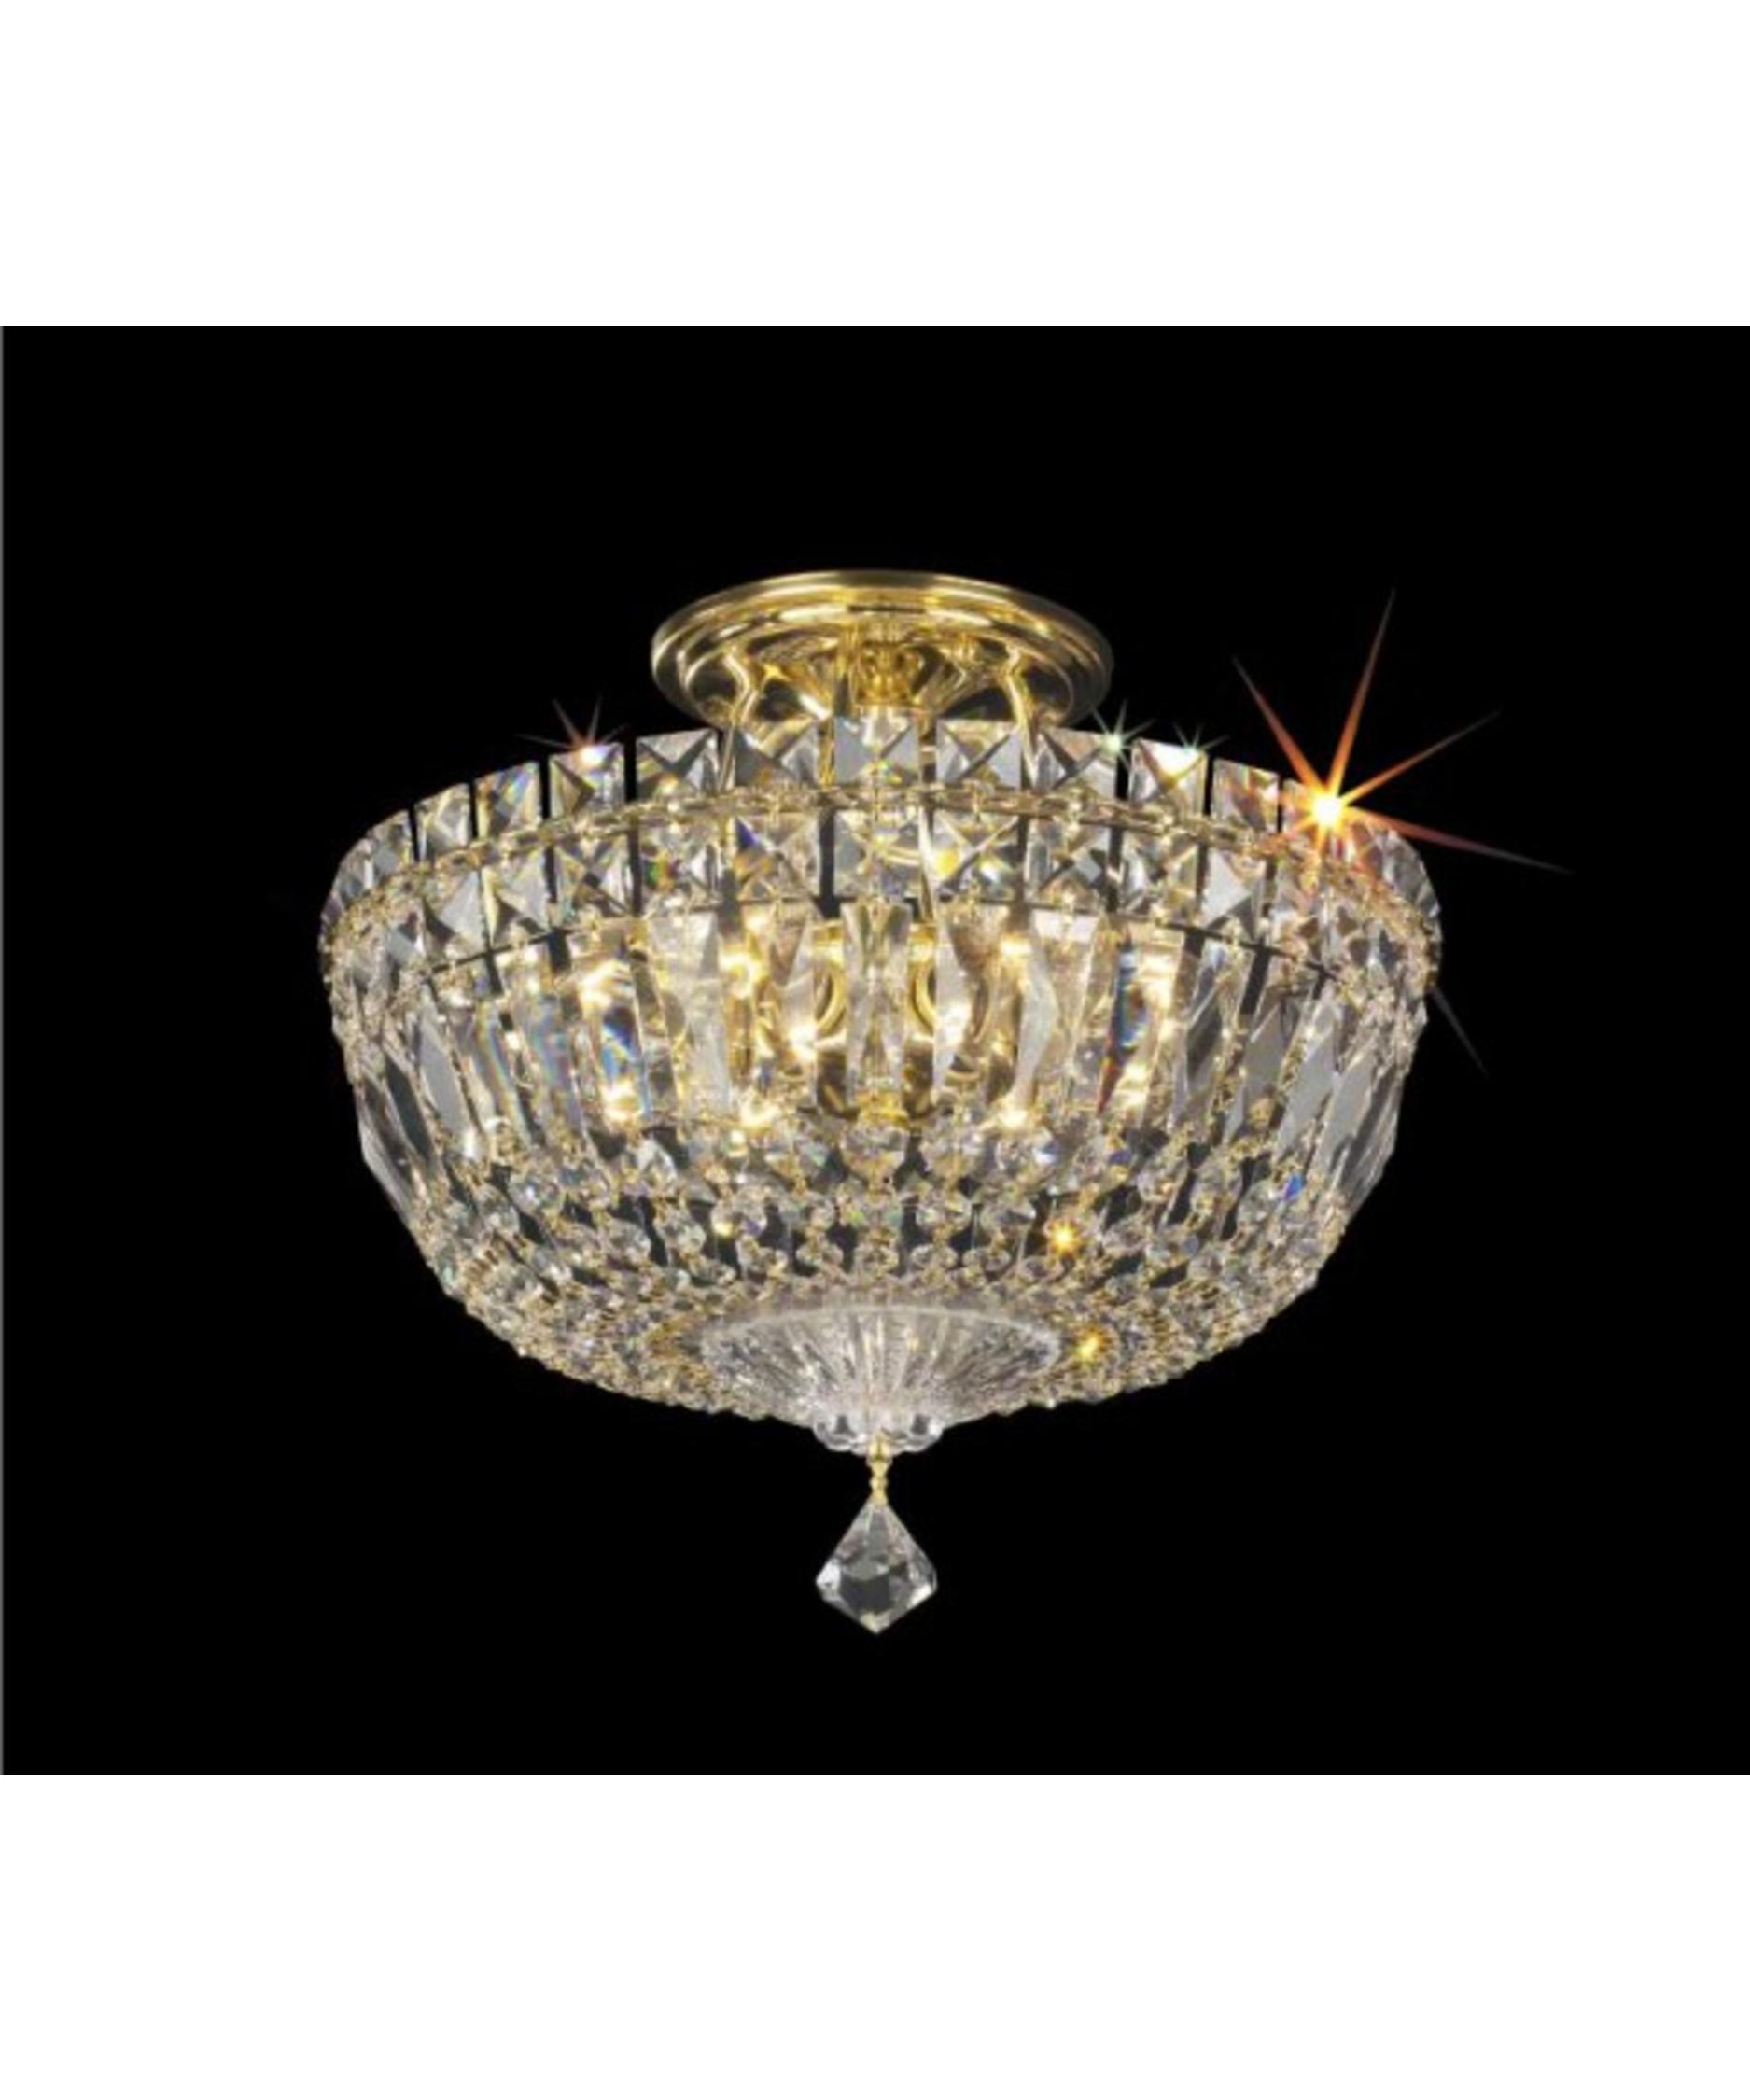 Light : Lovely Crystal Semi Flush Mount Lighting In Chandelier Of For 2018 Flush Chandelier Ceiling Lights (View 20 of 20)